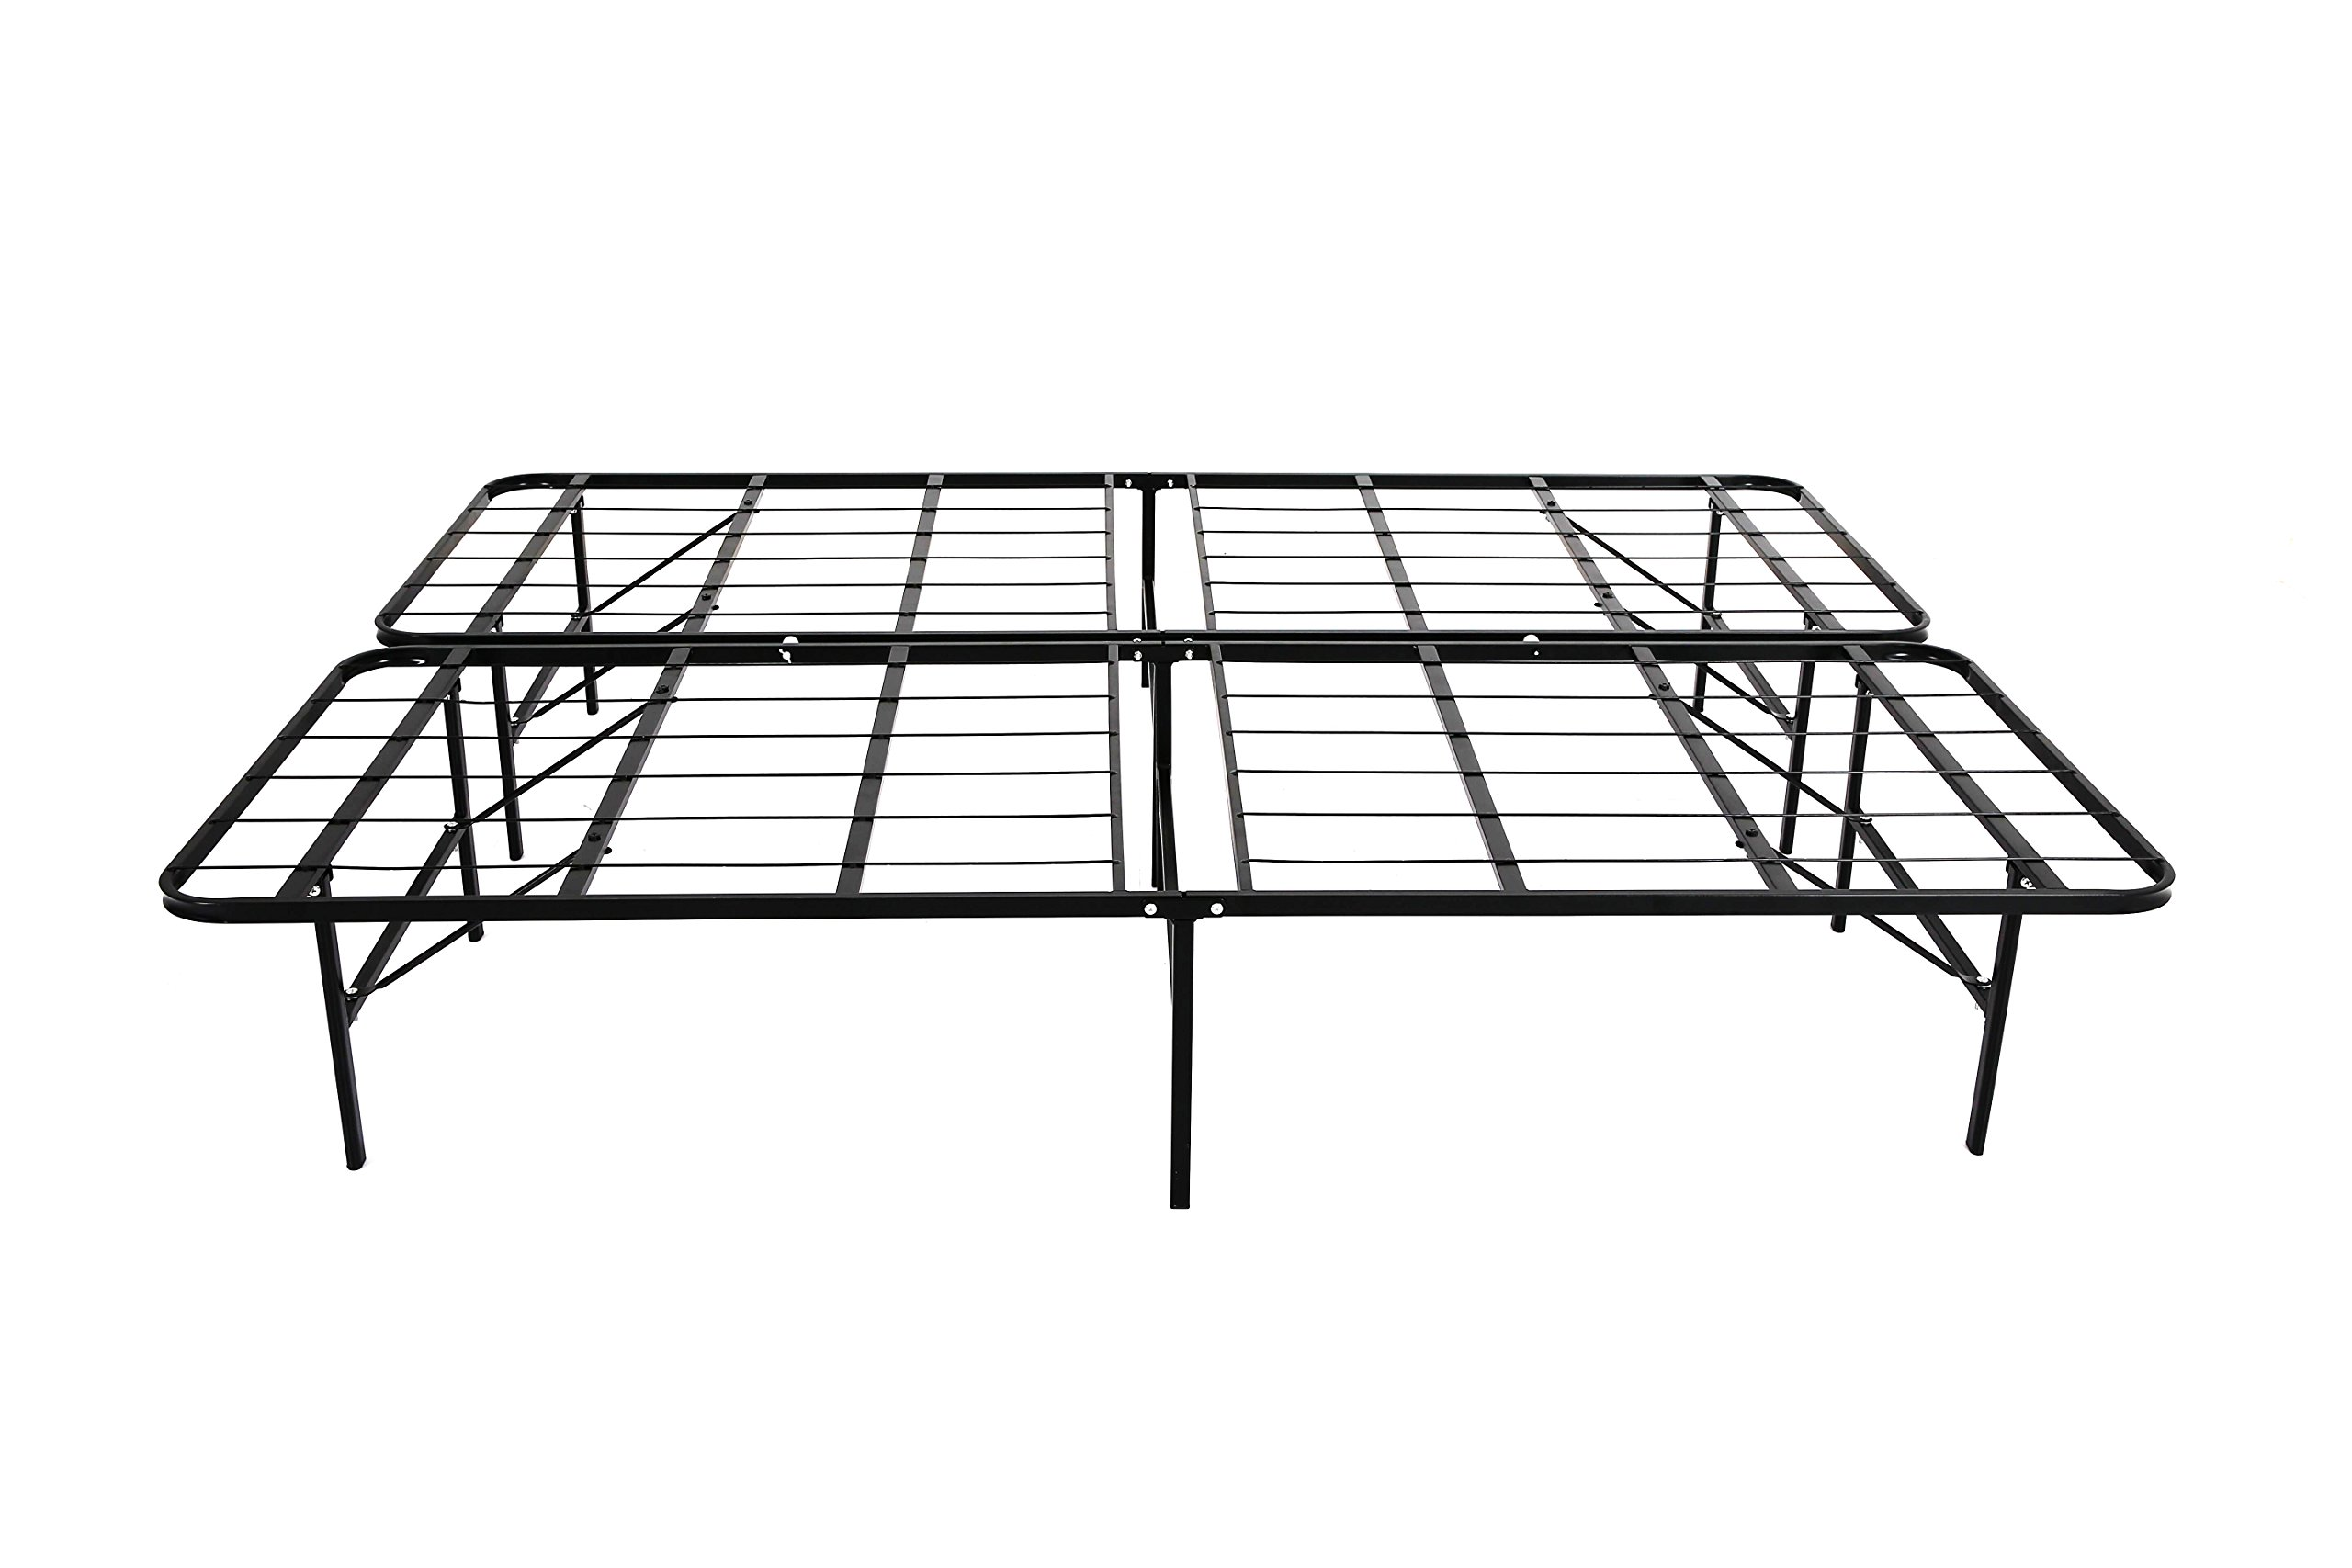 """Knock Off """"The Base"""" Platform Metal Base (Twin), Replaces Foundation, Box Spring, and Bedframe, 1 Minute Set-up, All-in-One Unit. (Also Available in TwinXL, Full, Queen, King, California King)"""